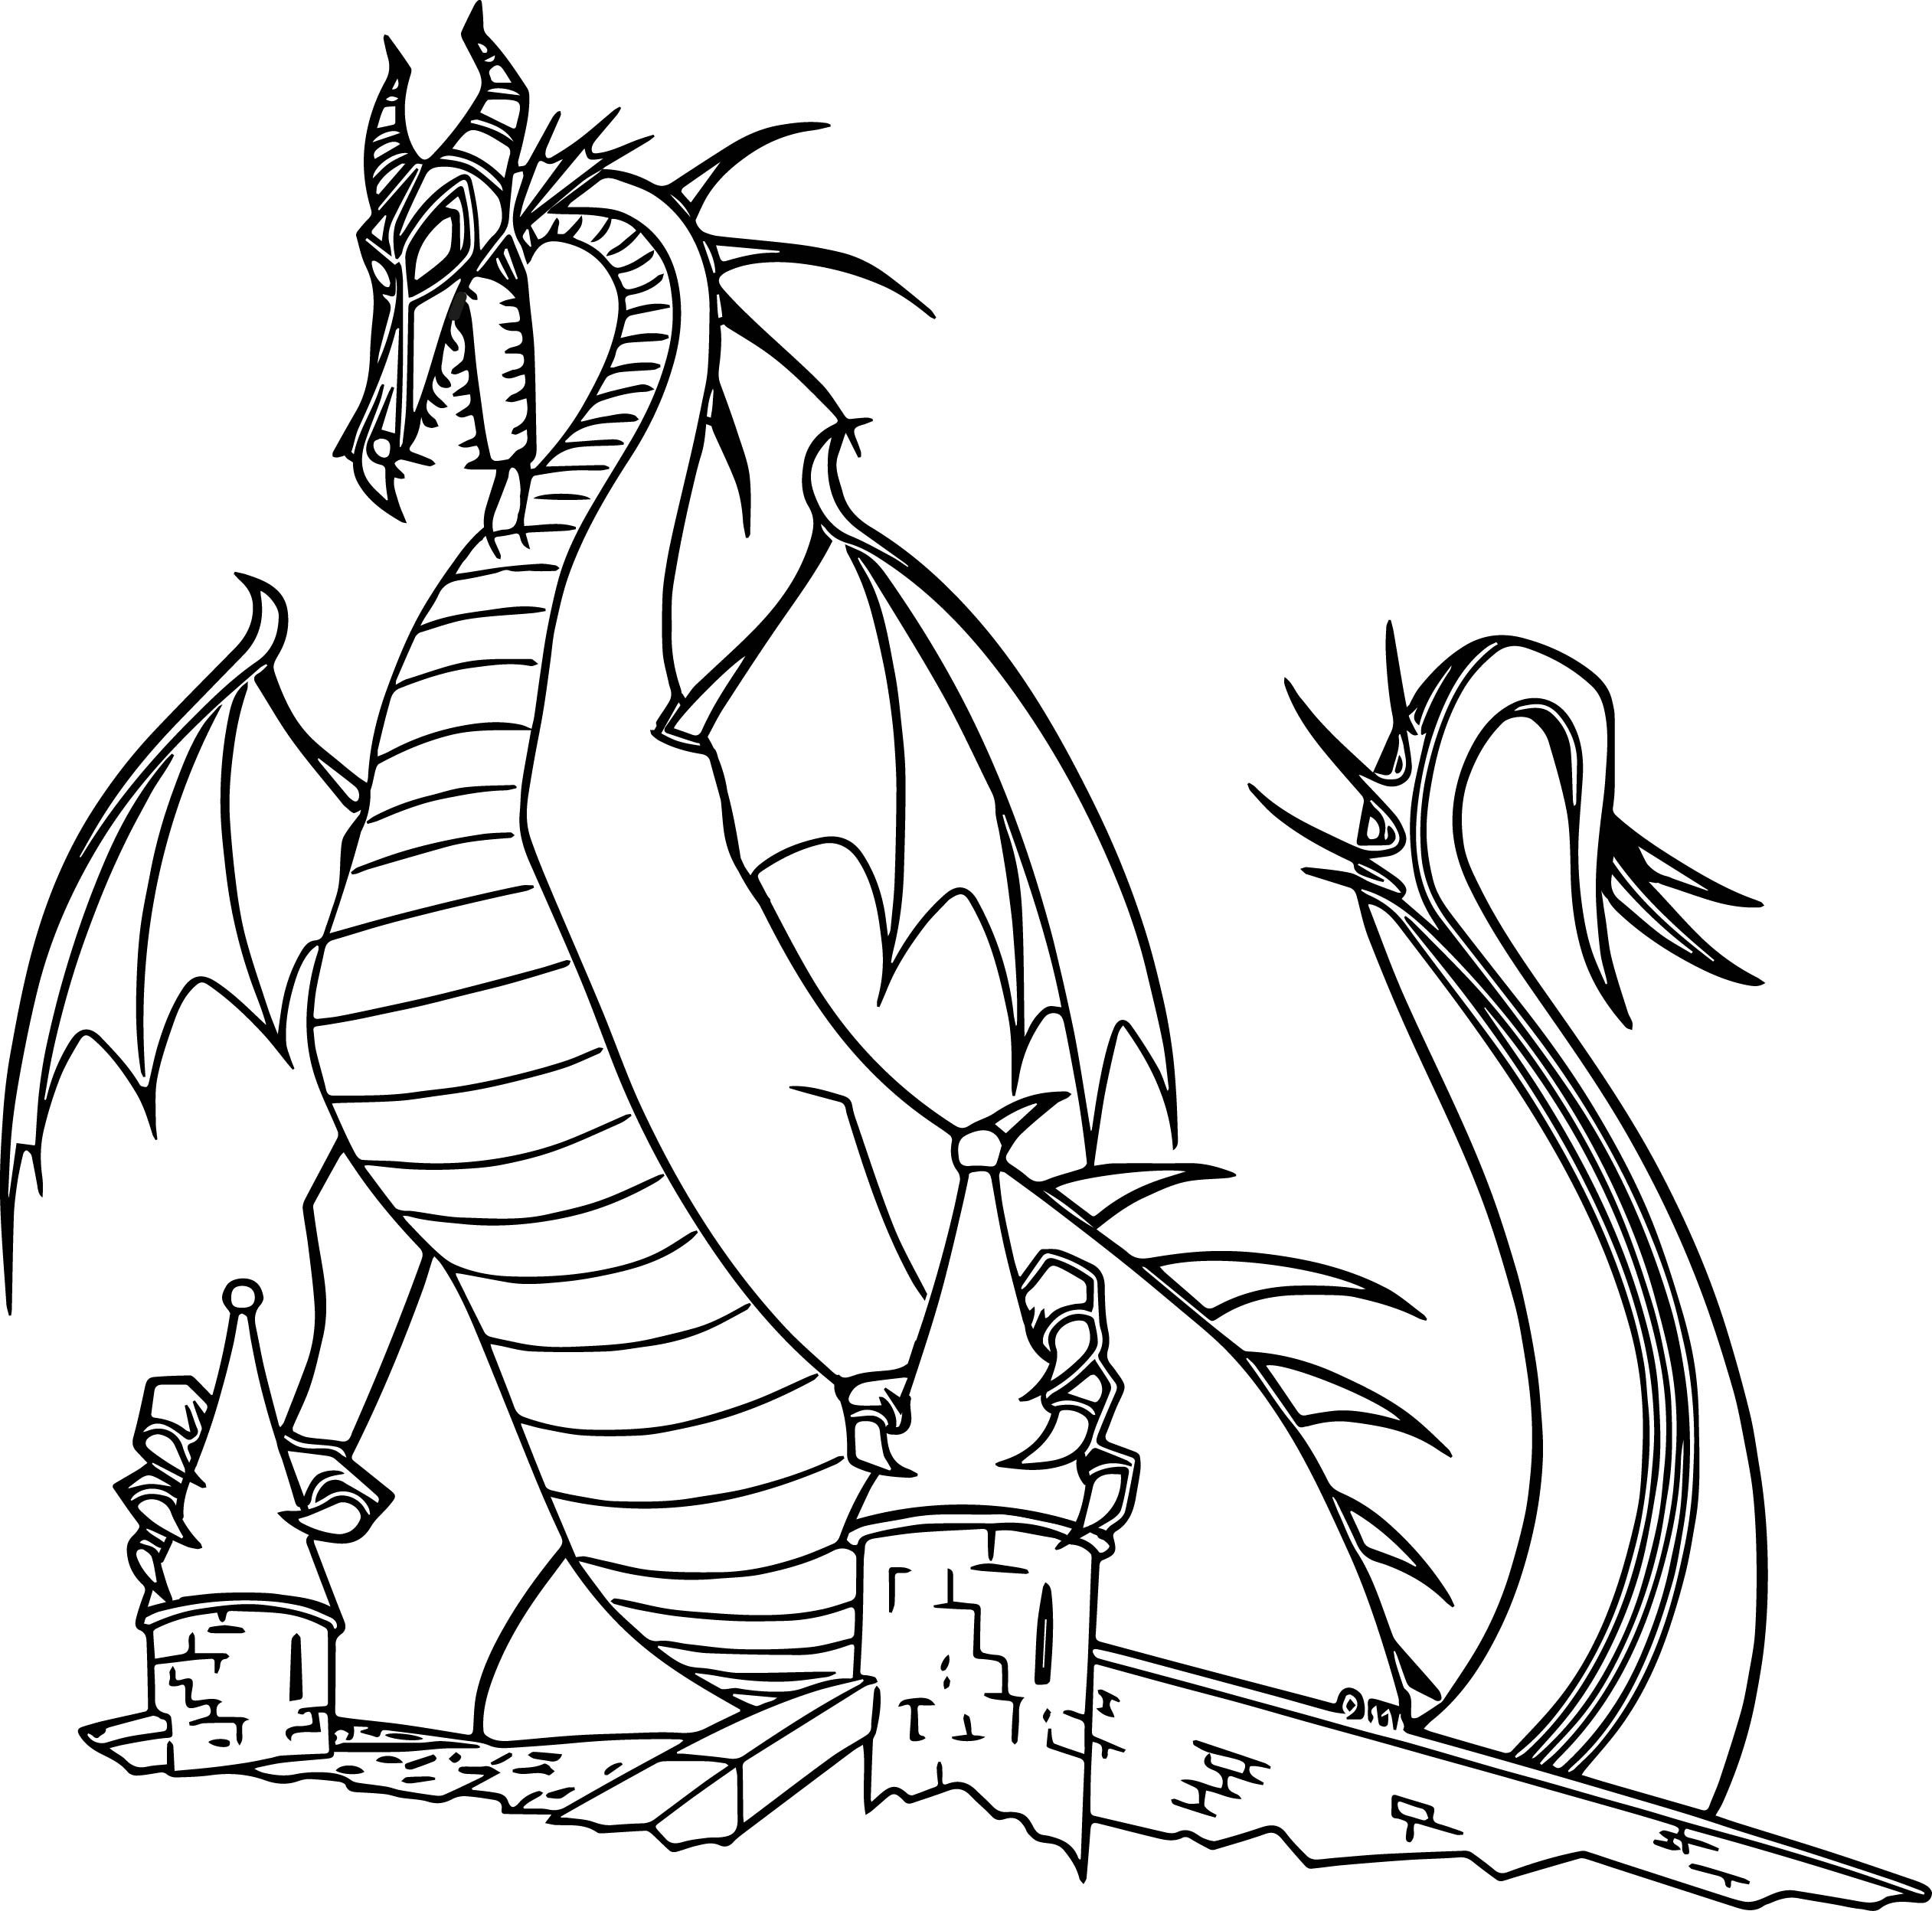 dragon coloring page detailed dragon coloring pages coloring home page dragon coloring